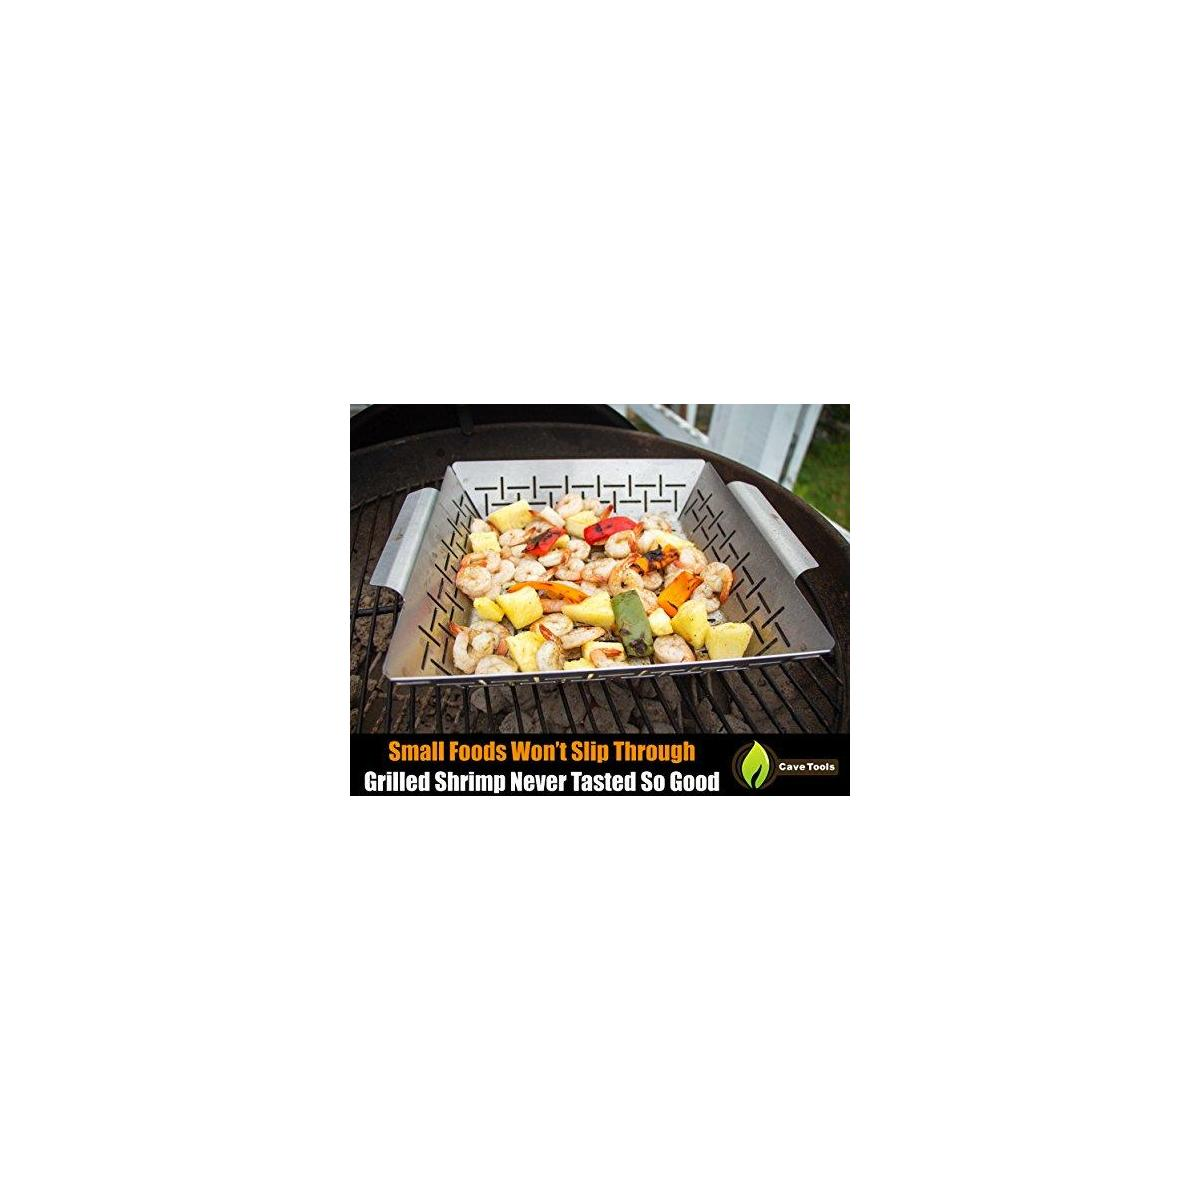 Pepper Rack + Vegetable Grilling Basket - Dishwasher Safe Stainless Steel - Large Non Stick BBQ Grid Pan For Veggies Meat Fish Shrimp & Fruit - Best Barbecue Wok Topper Accessories Gift for Dad